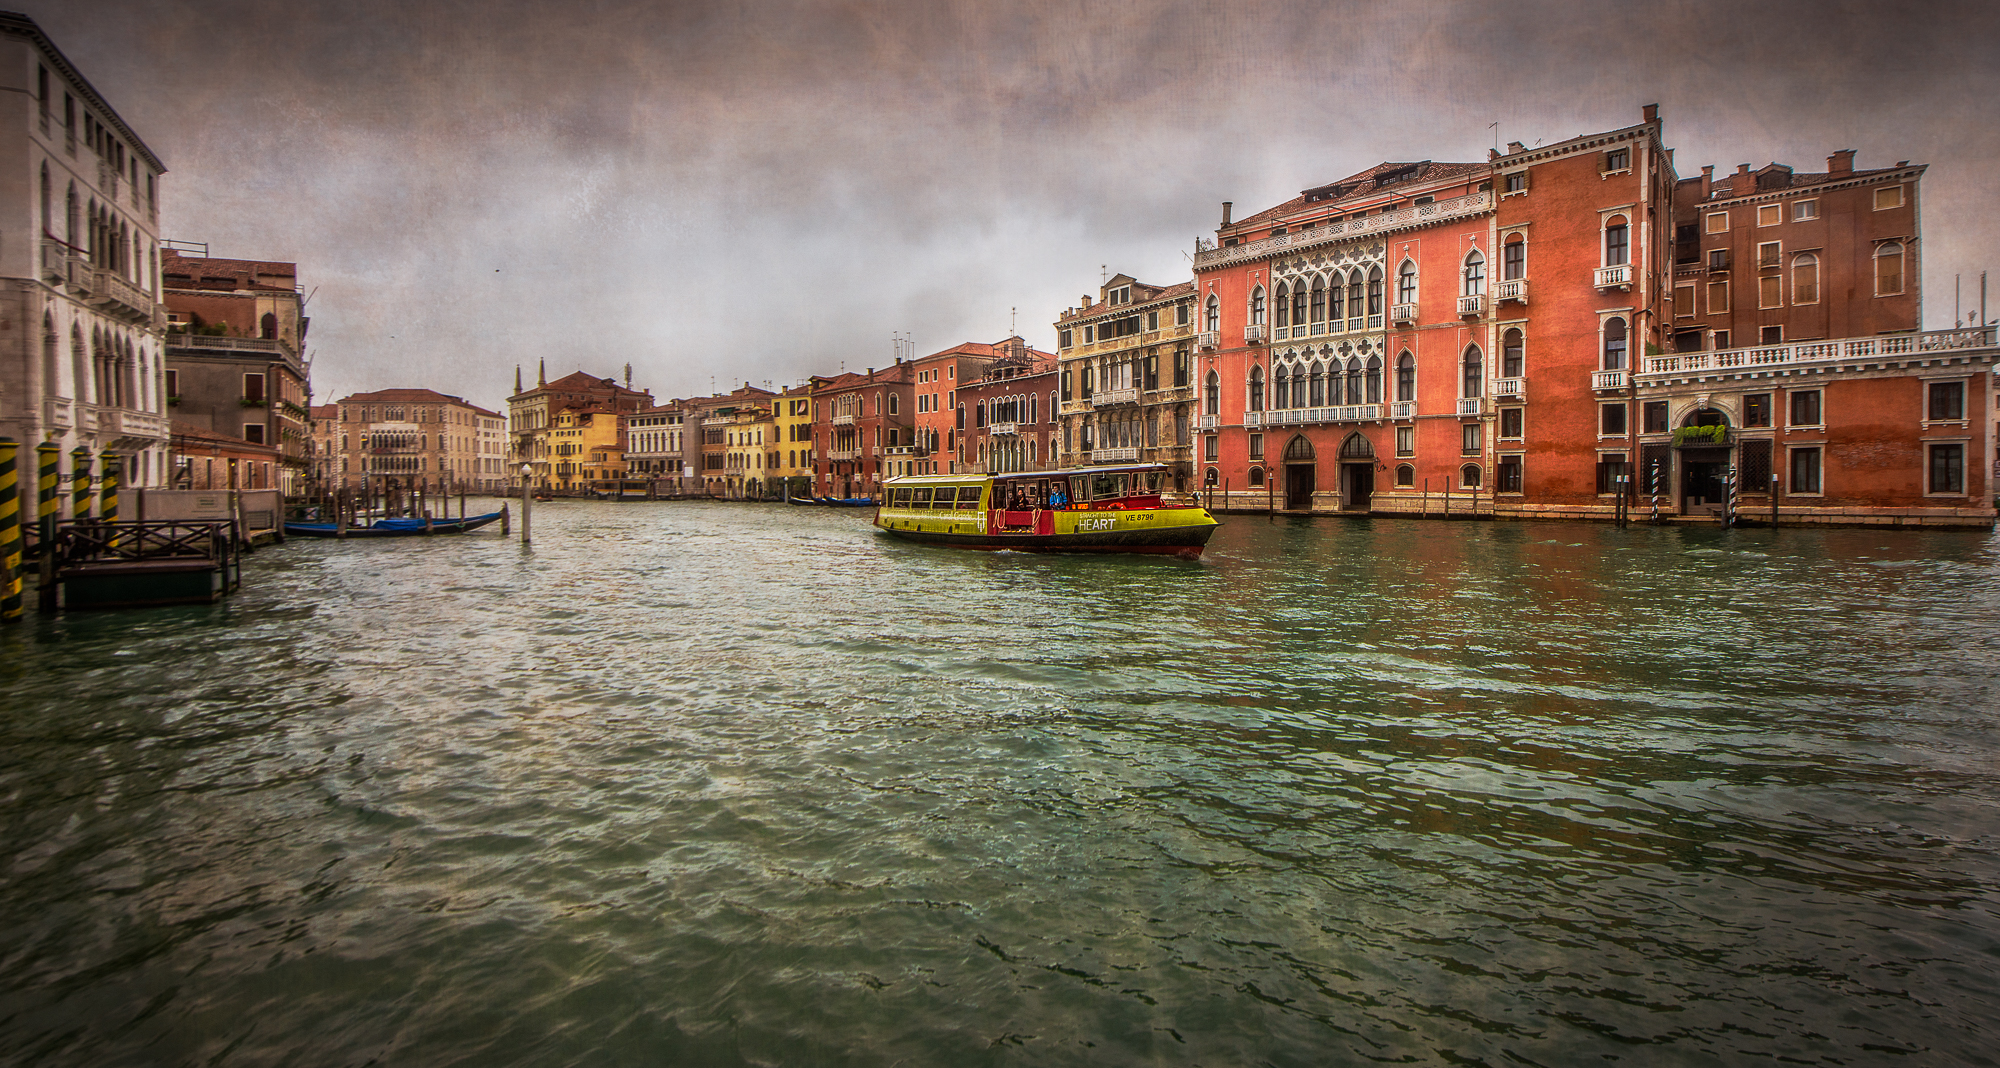 A portion of San Polo, across the Grand Canal from San Marco